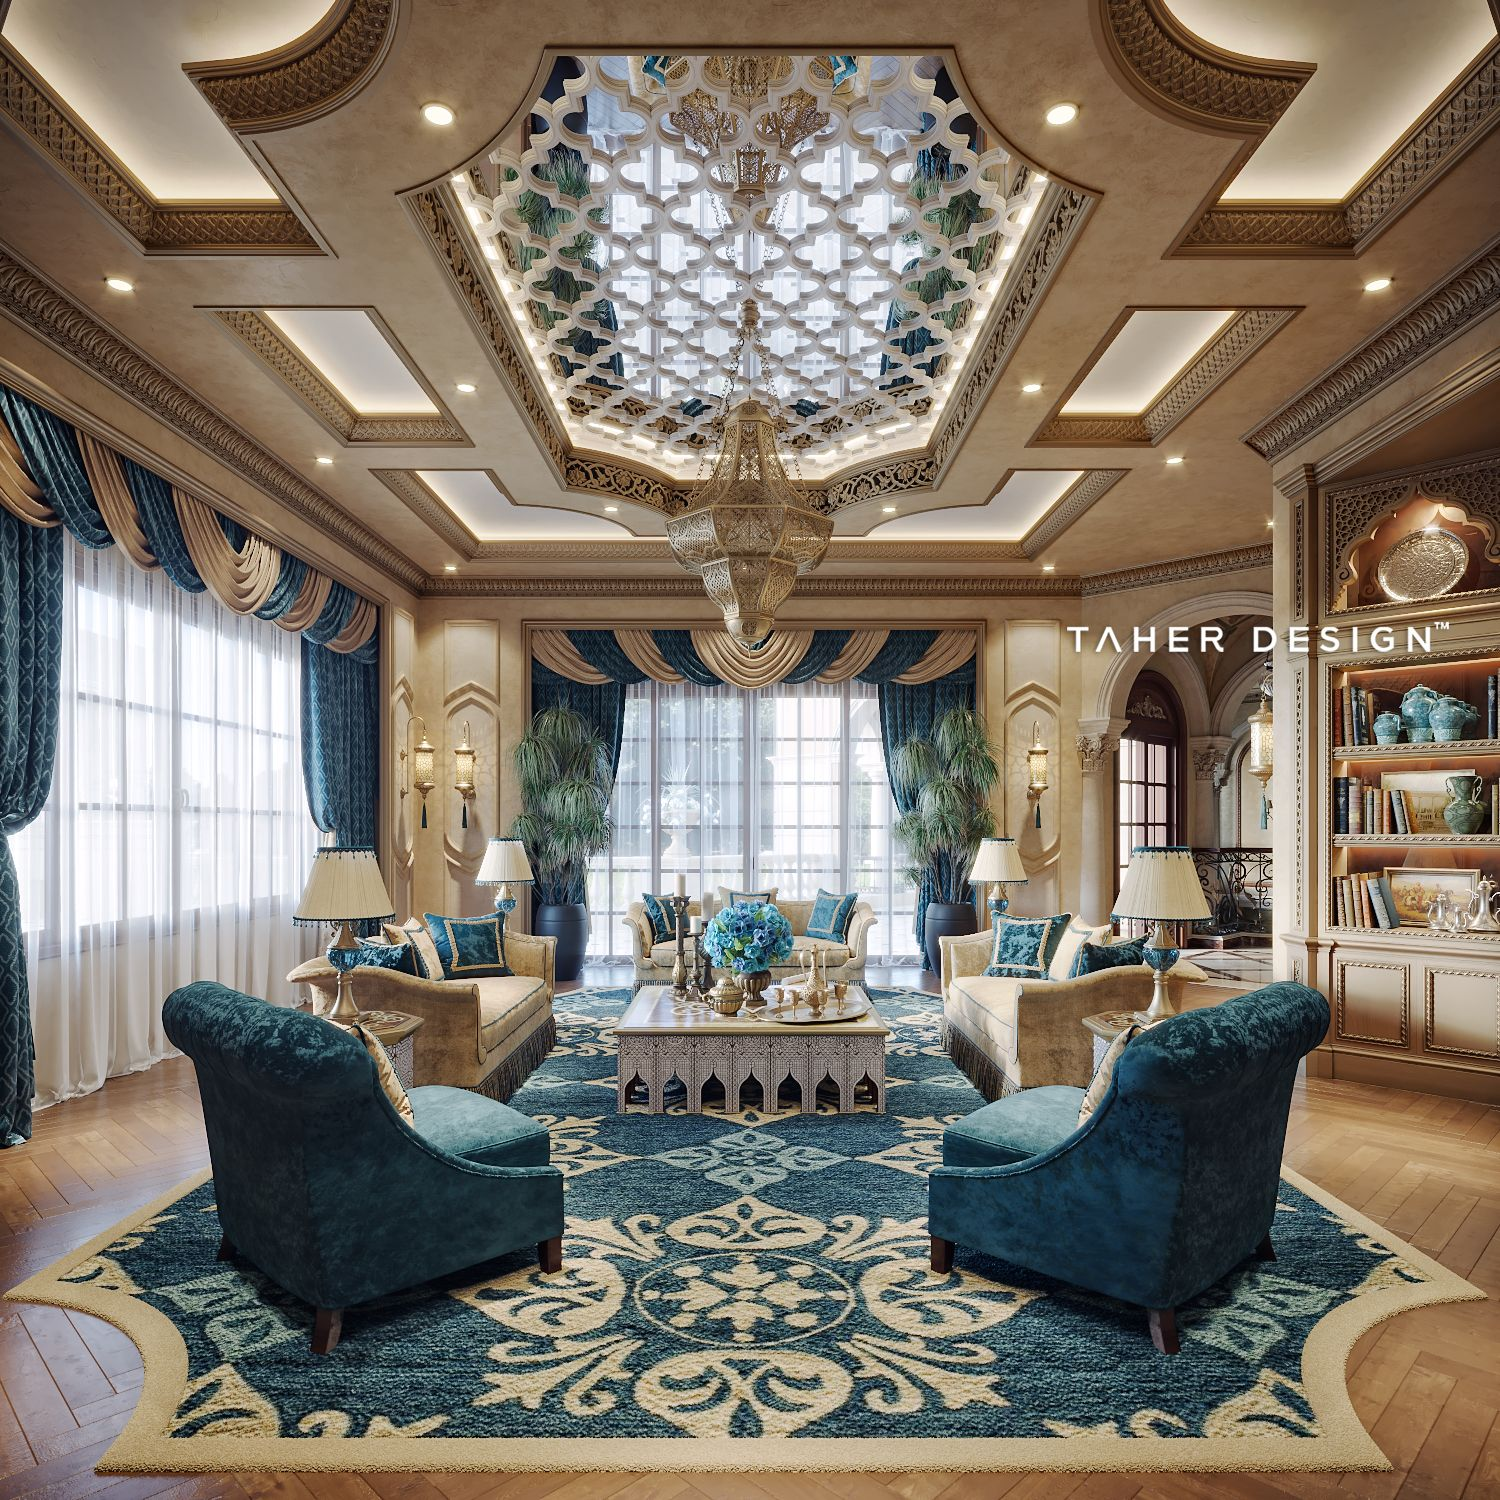 Family Room Design For Luxury Mansion Located In (Dubai